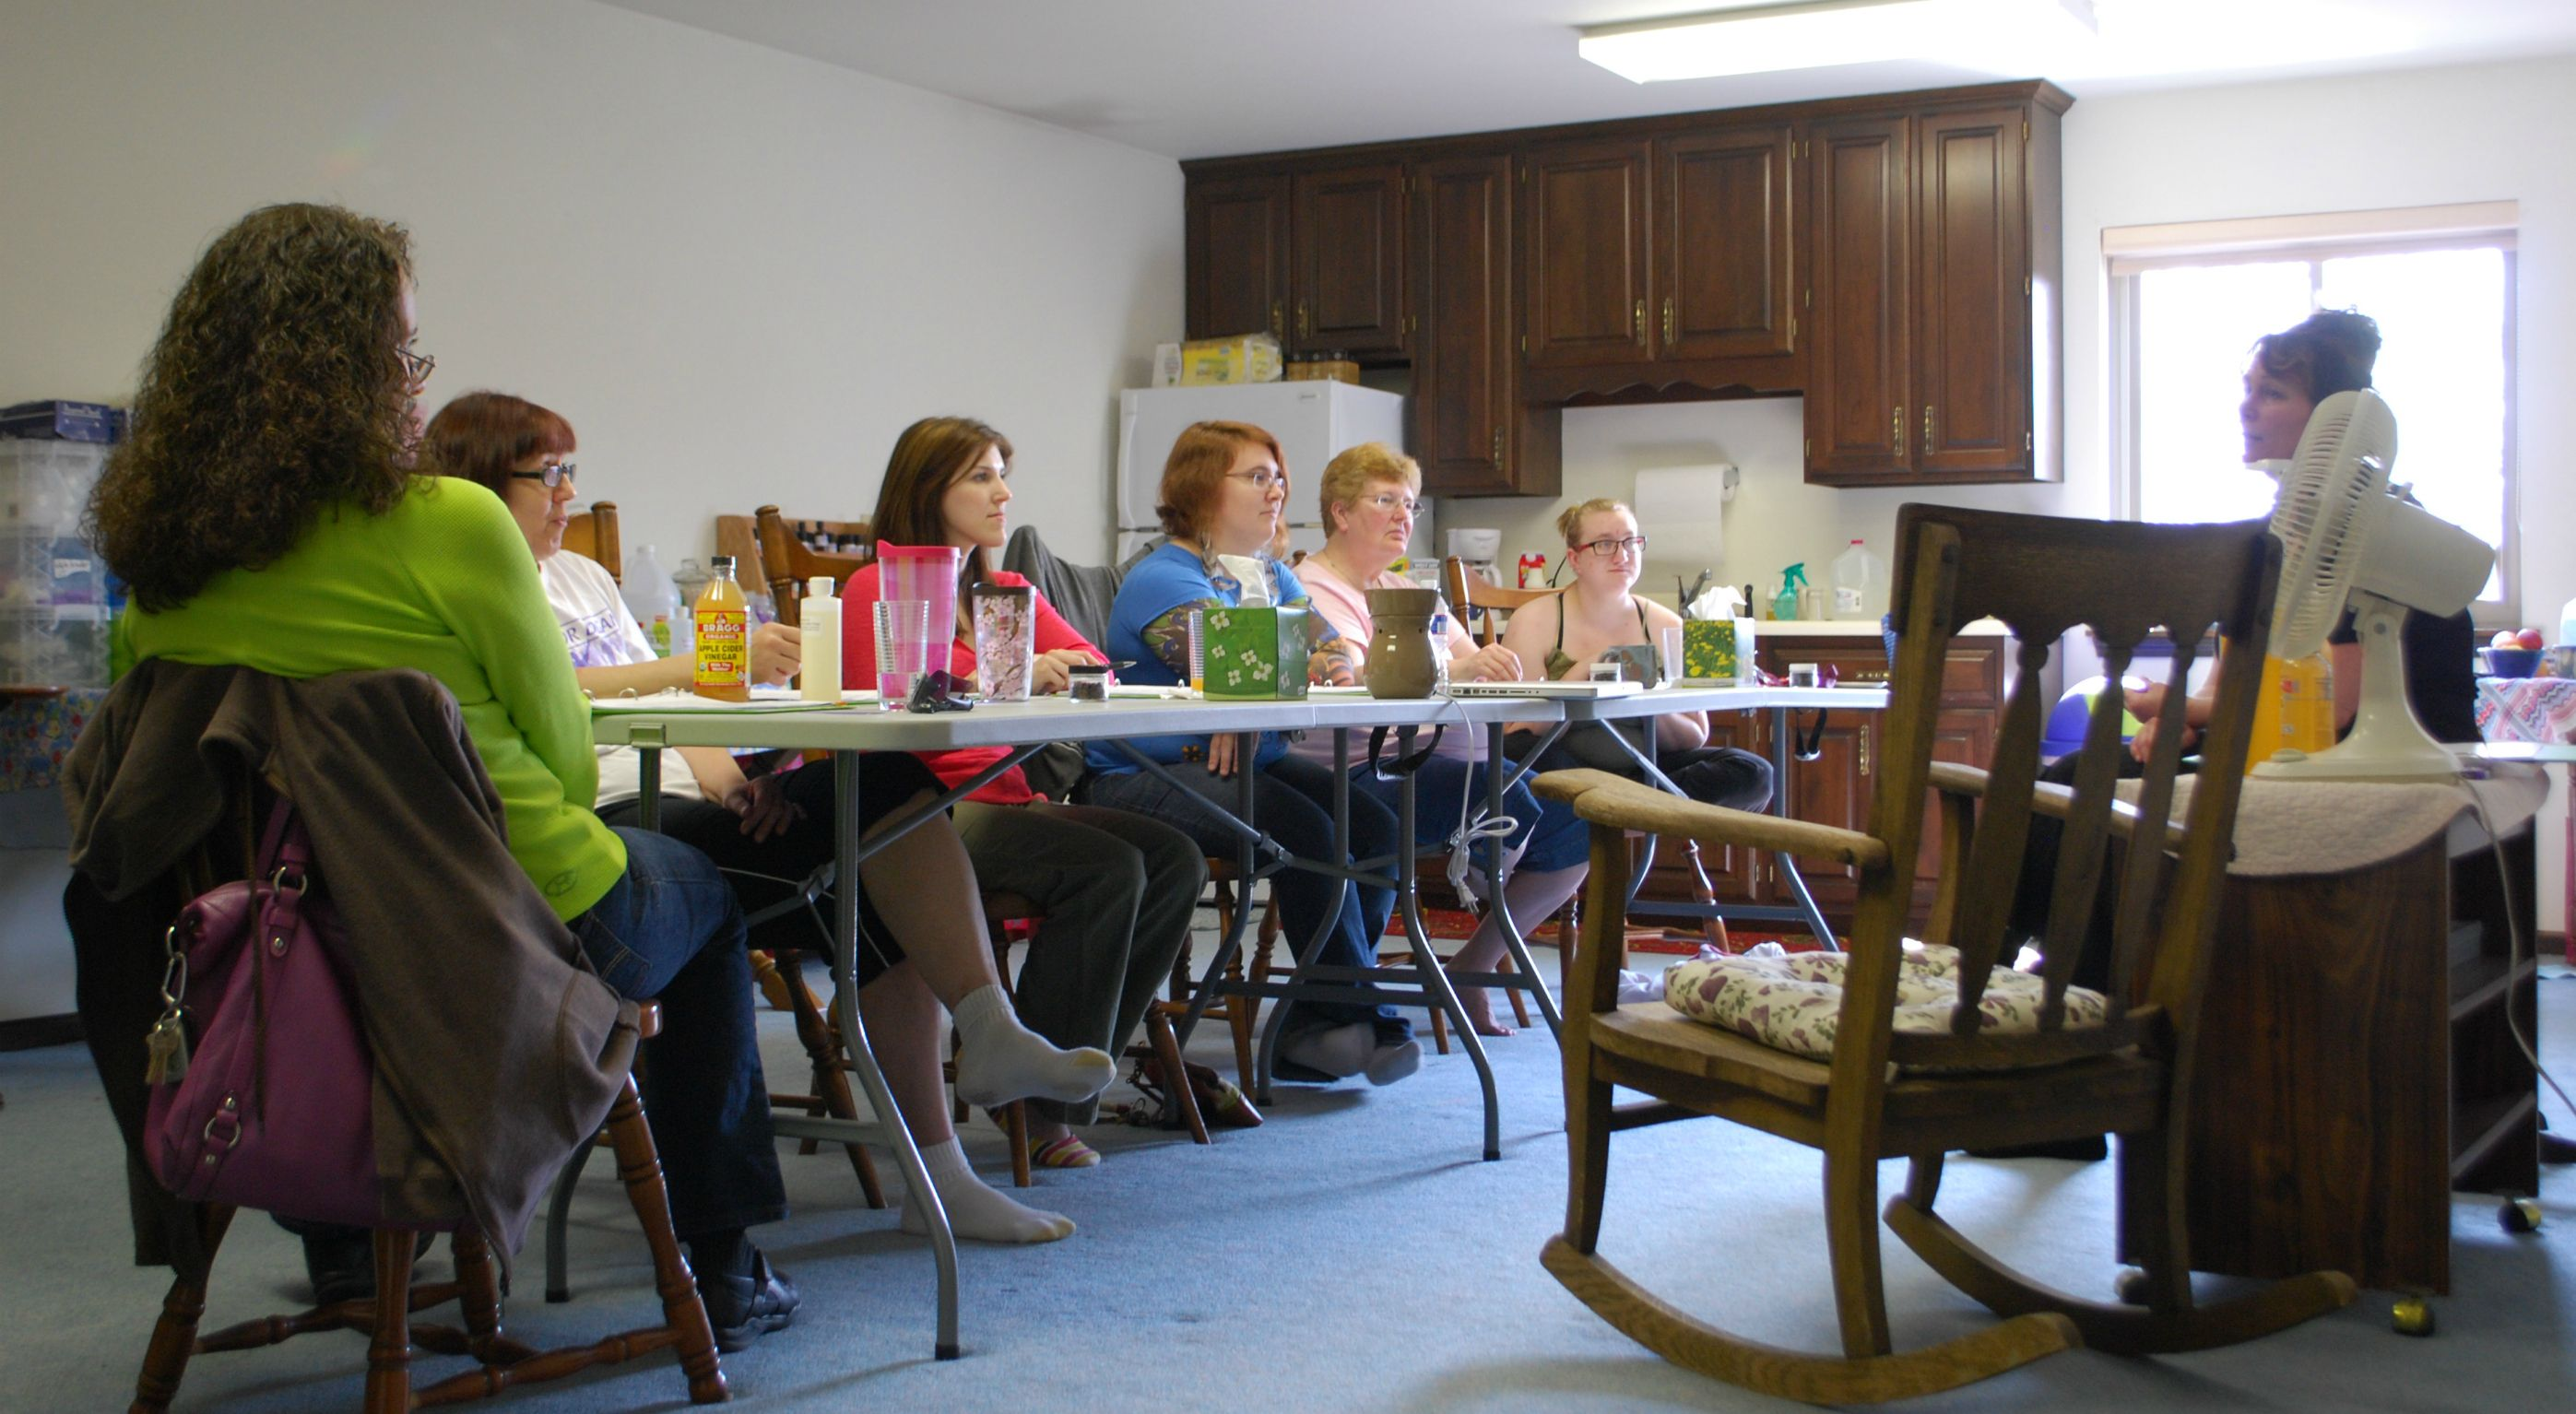 What a great group of ladies in class on March 17th!  http://aromaticwisdominstitute.com/our-classes/green-cleaning-essential-oils